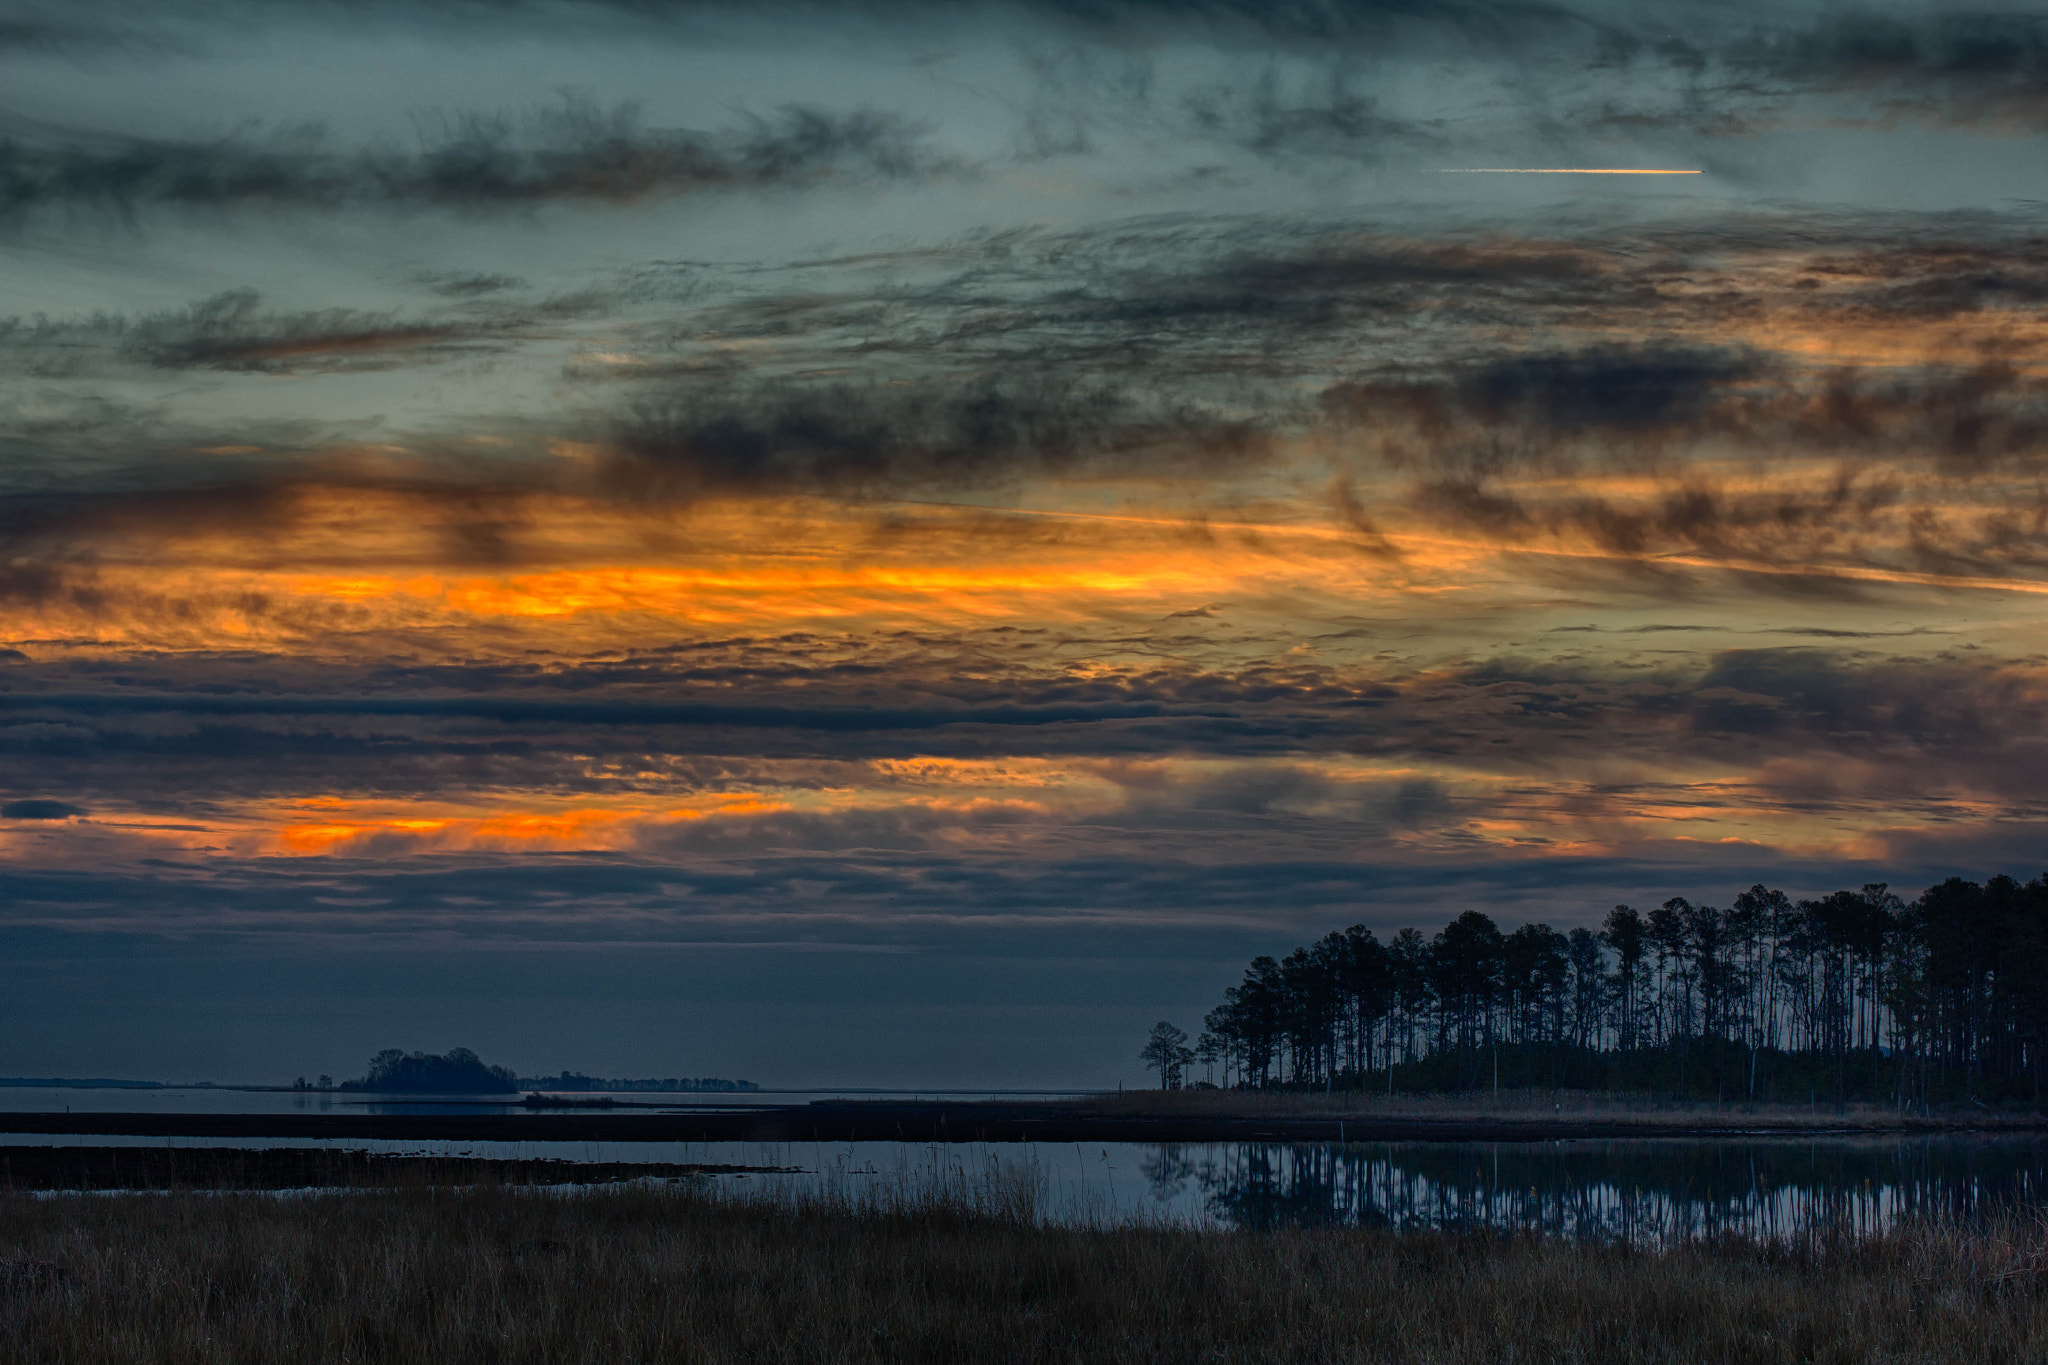 Photograph Sunrise at Blackwater I by Ursula Hubert Lawrence on 500px